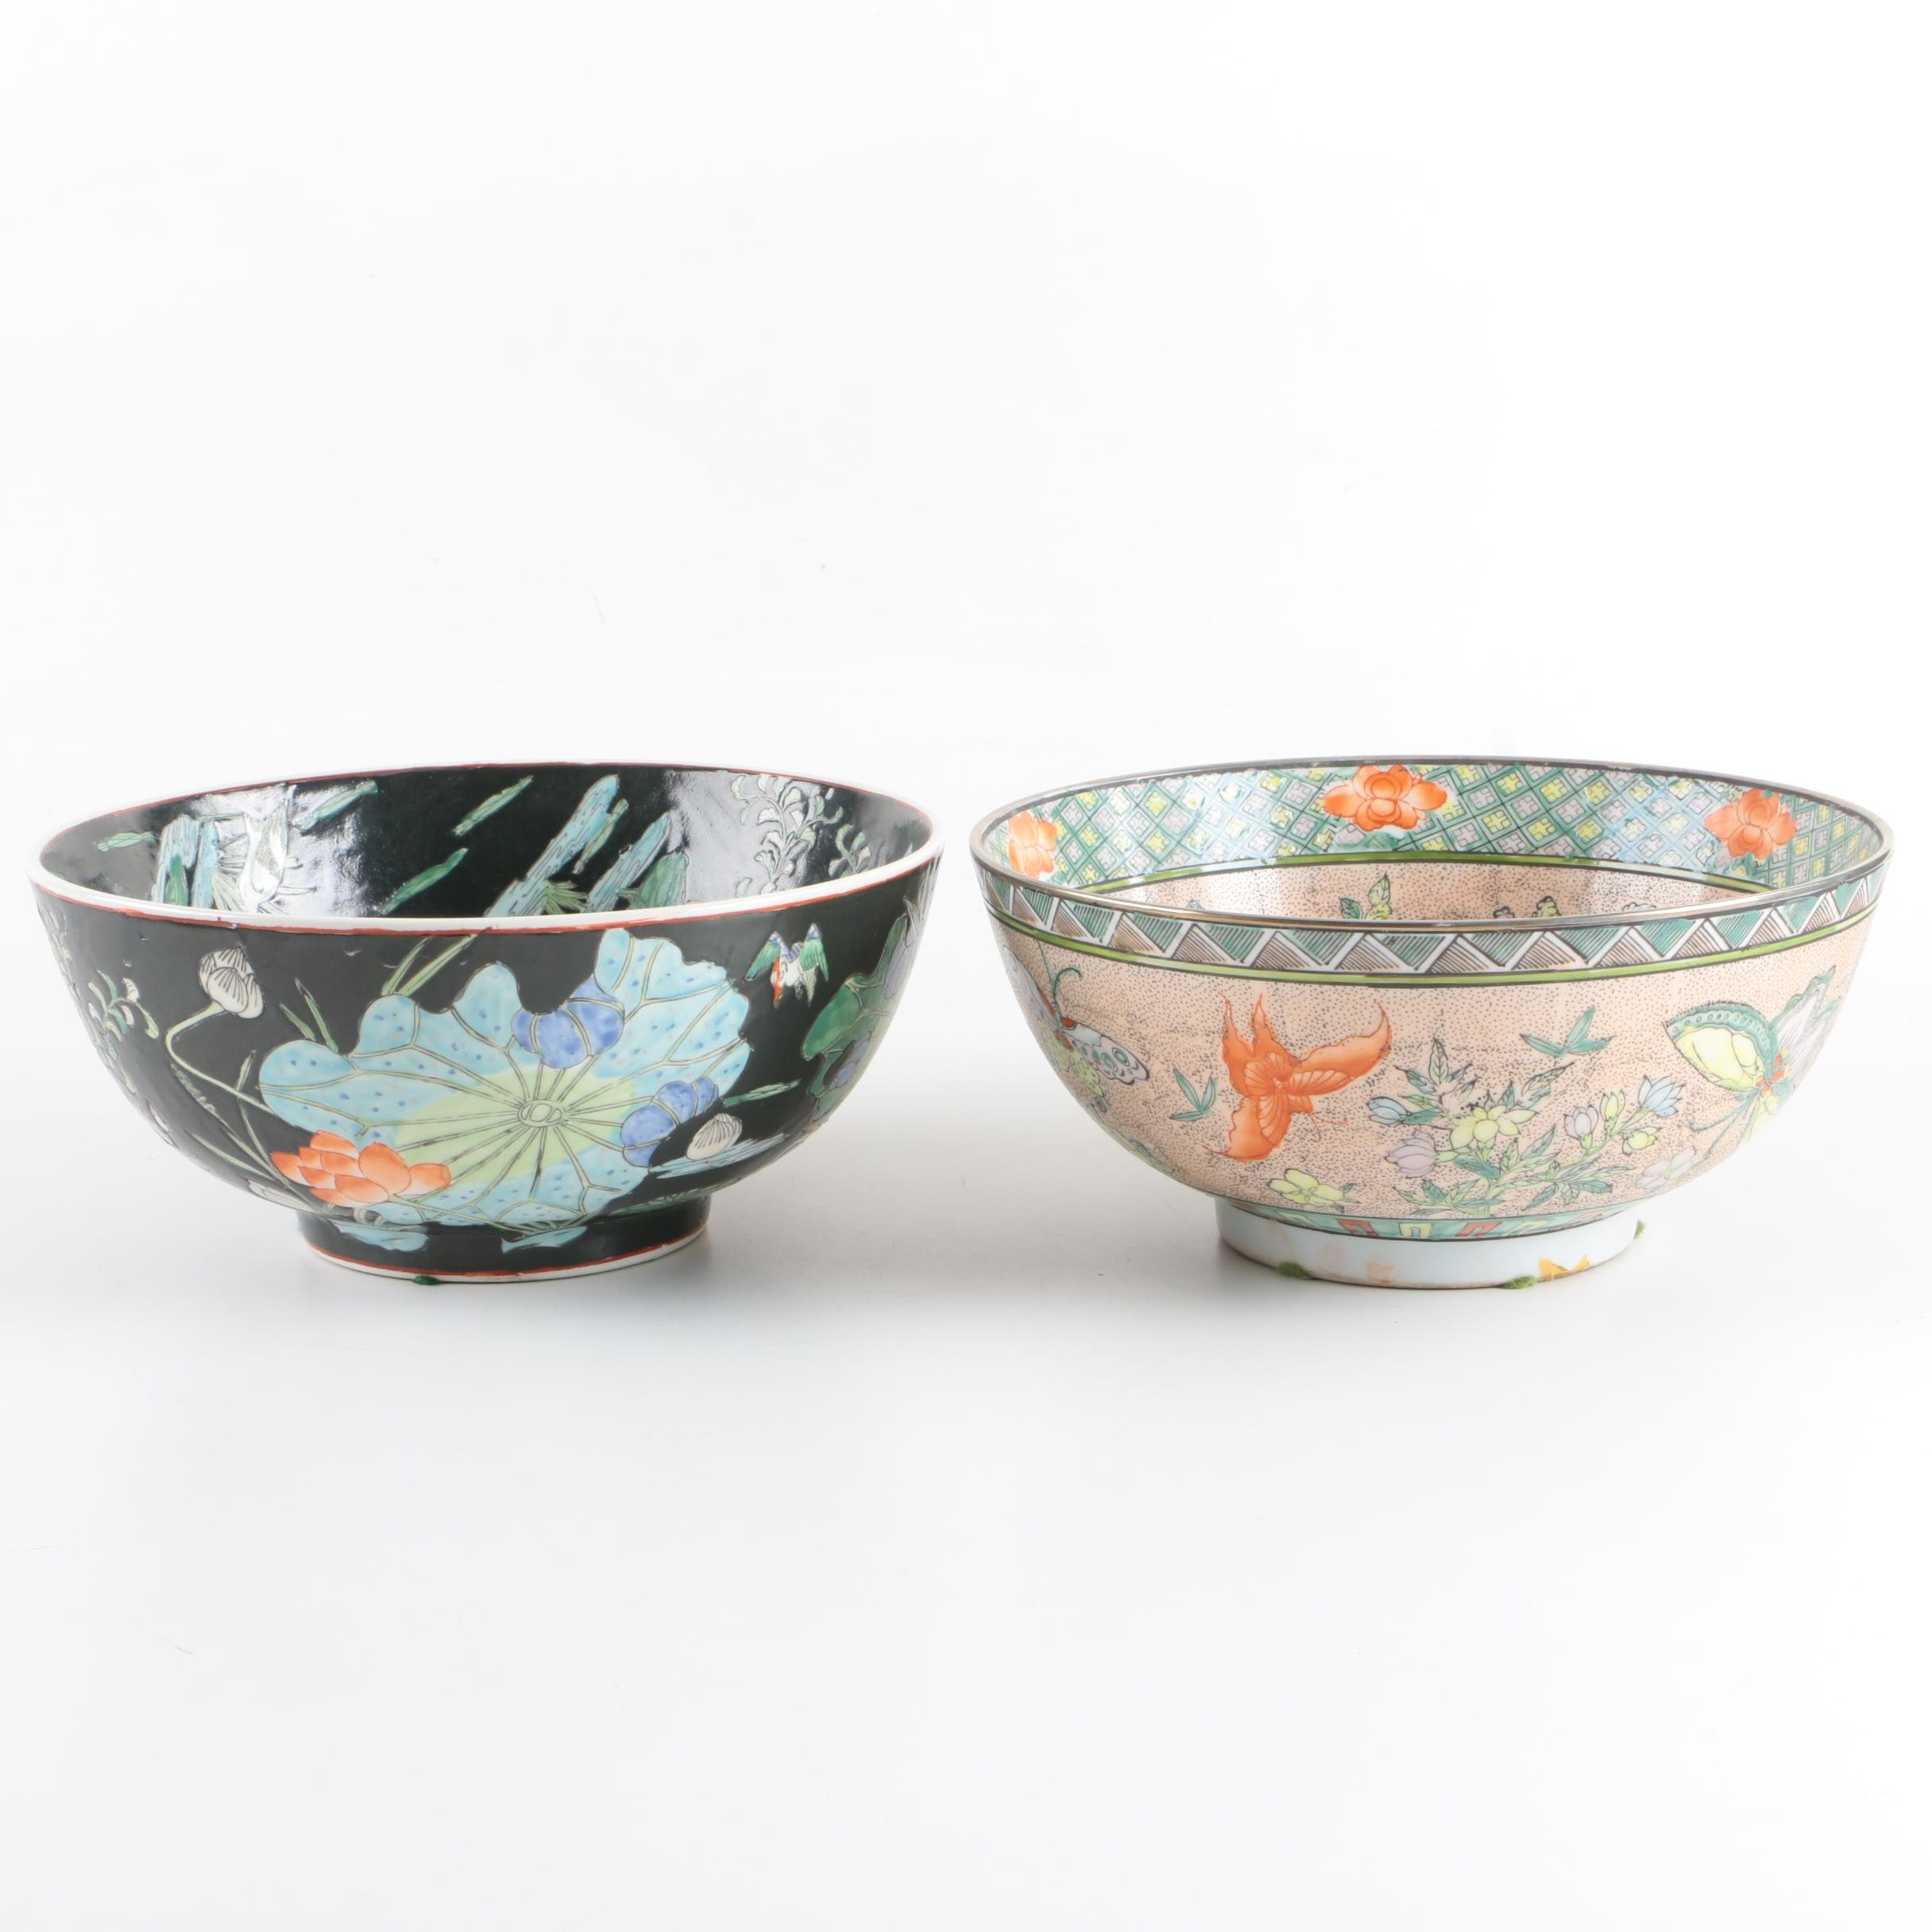 Chinese Export Porcelain Decorative Bowls